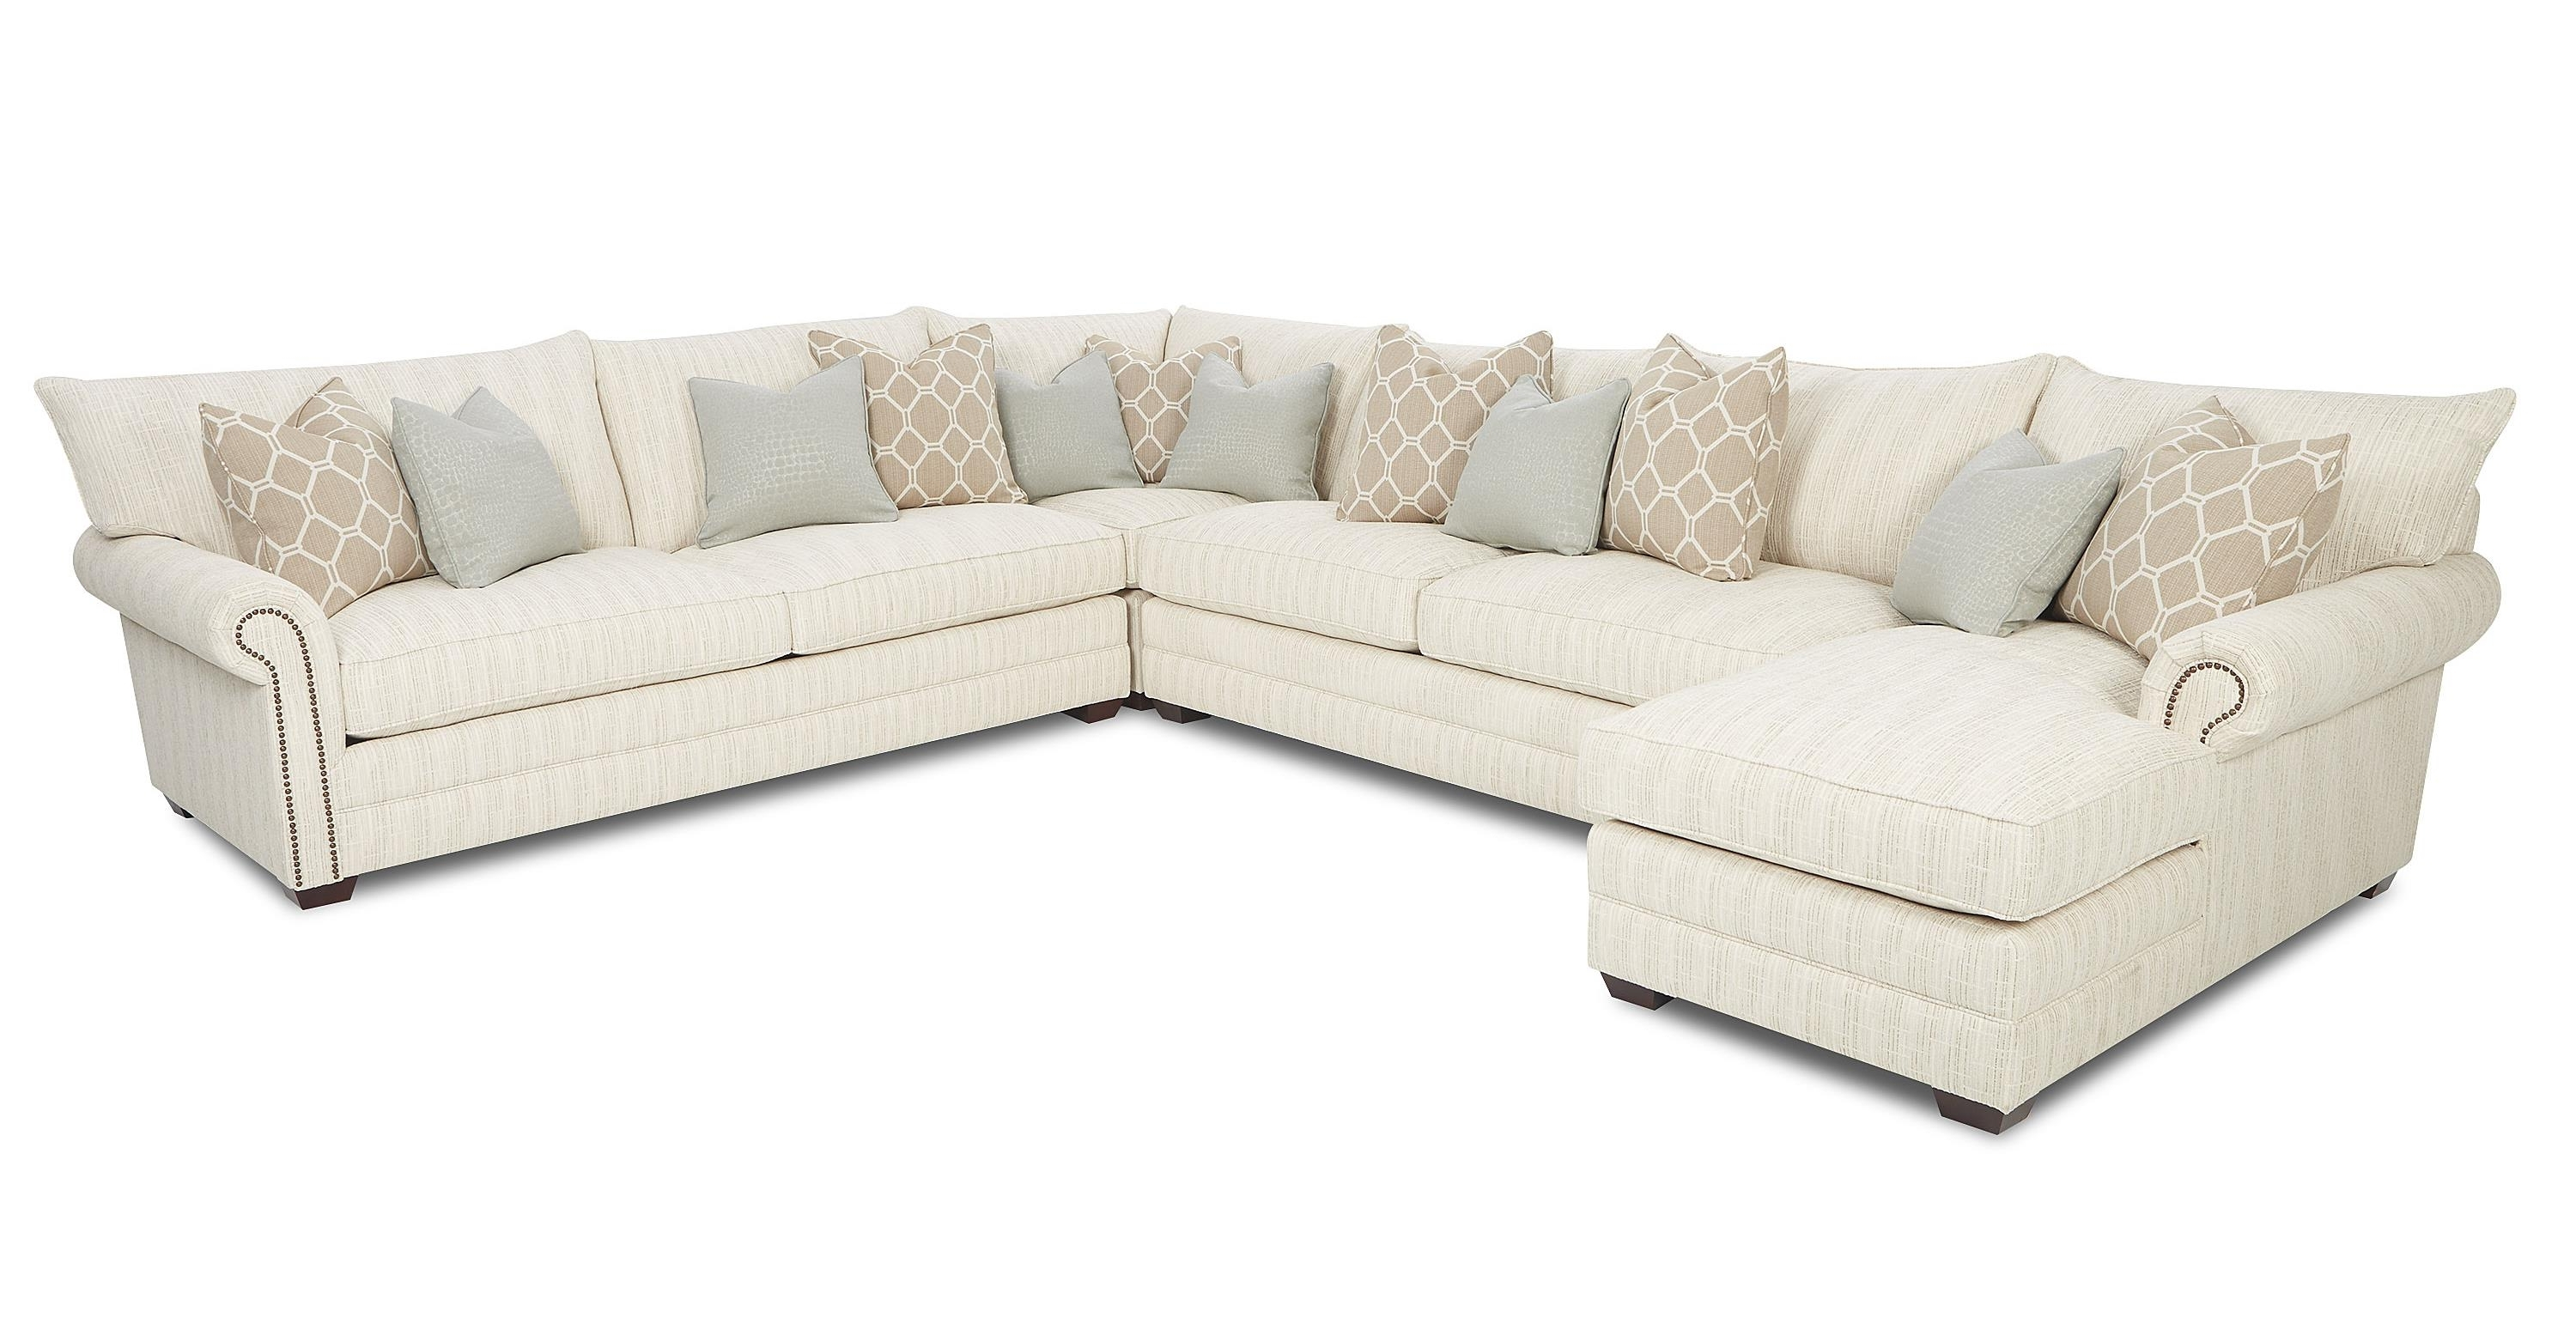 Best and Newest Traditional Sectional Sofa With Nailhead Trim And Chaise Lounge inside Sectional Sofas With Nailheads